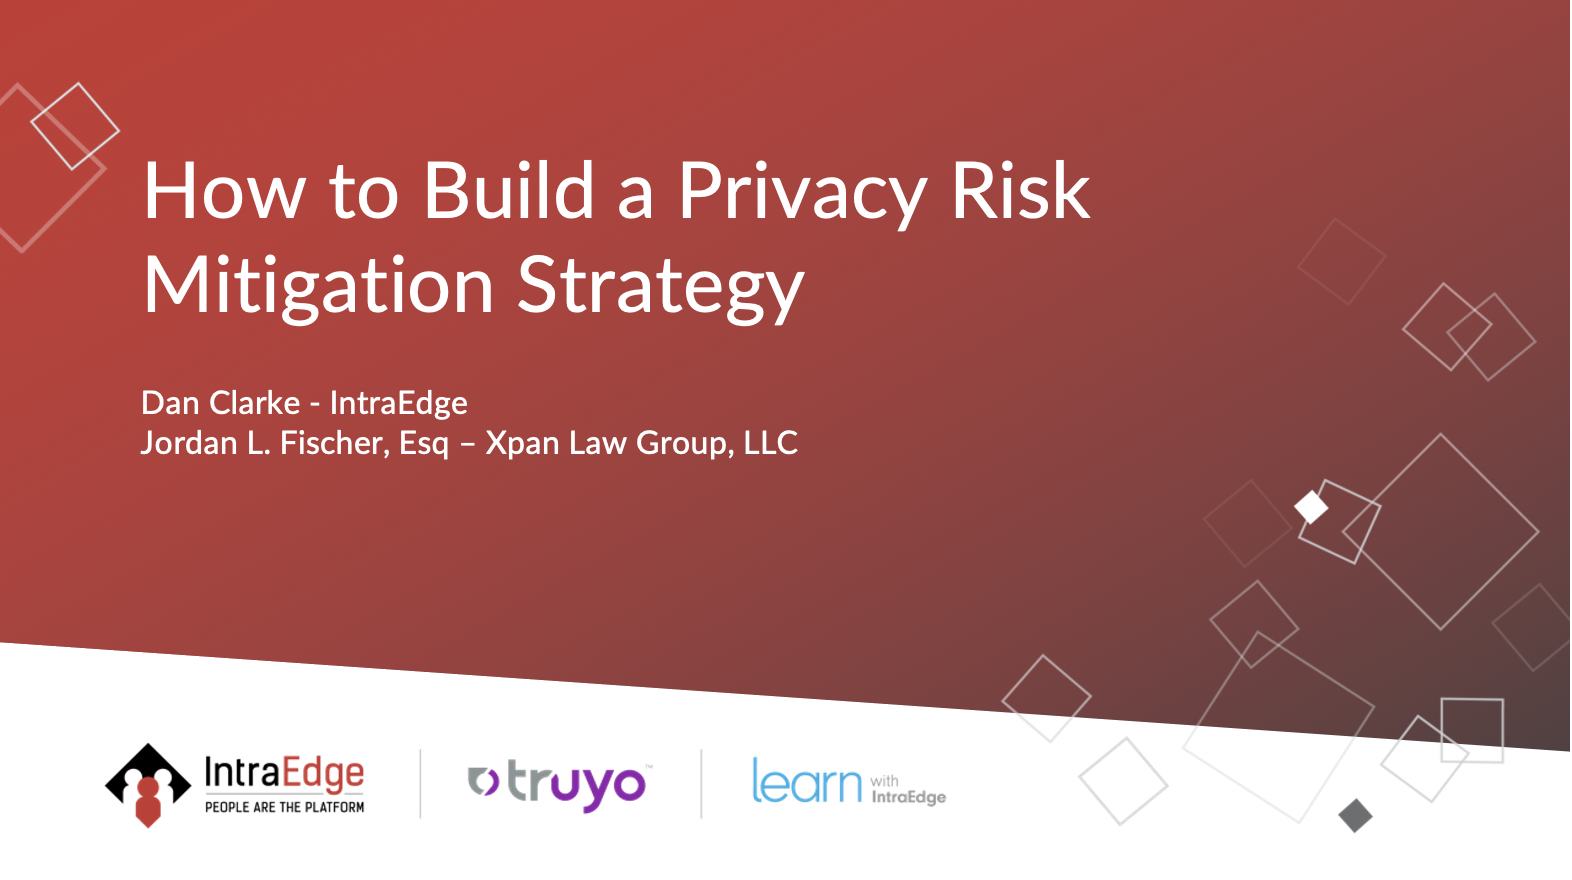 How to Build a Privacy Risk Mitigation Strategy